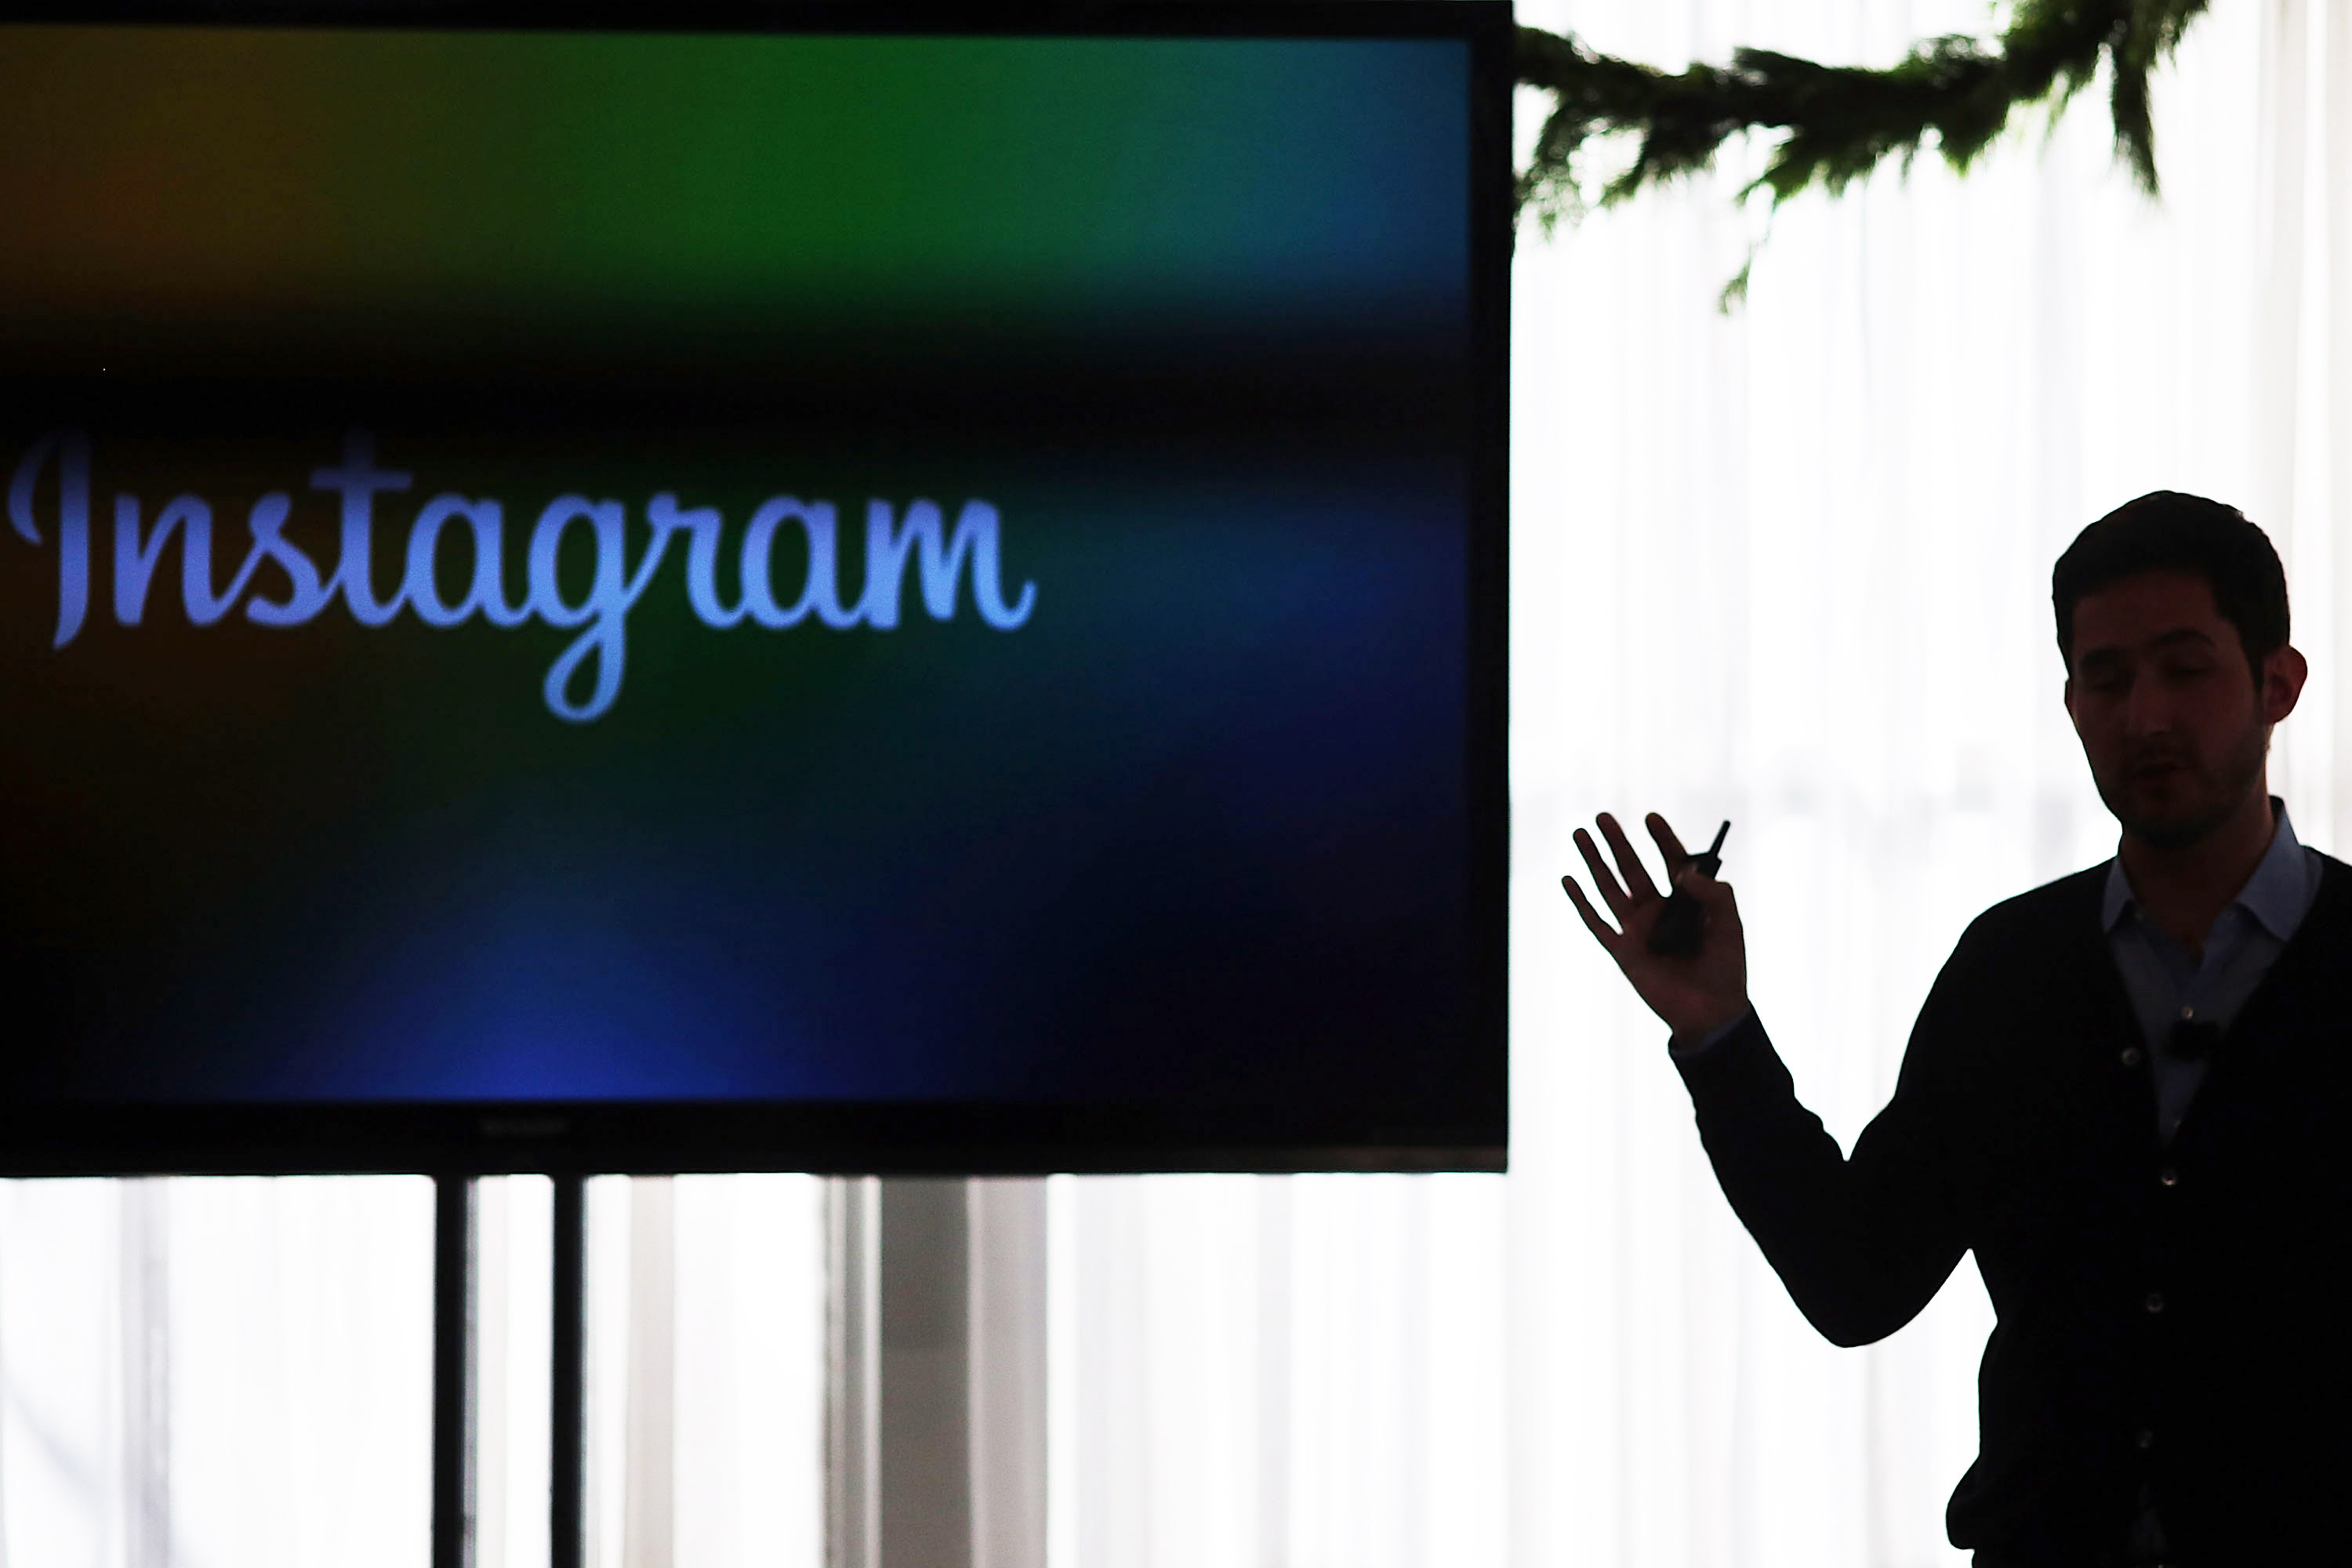 Instagram Holds Media Event In New York